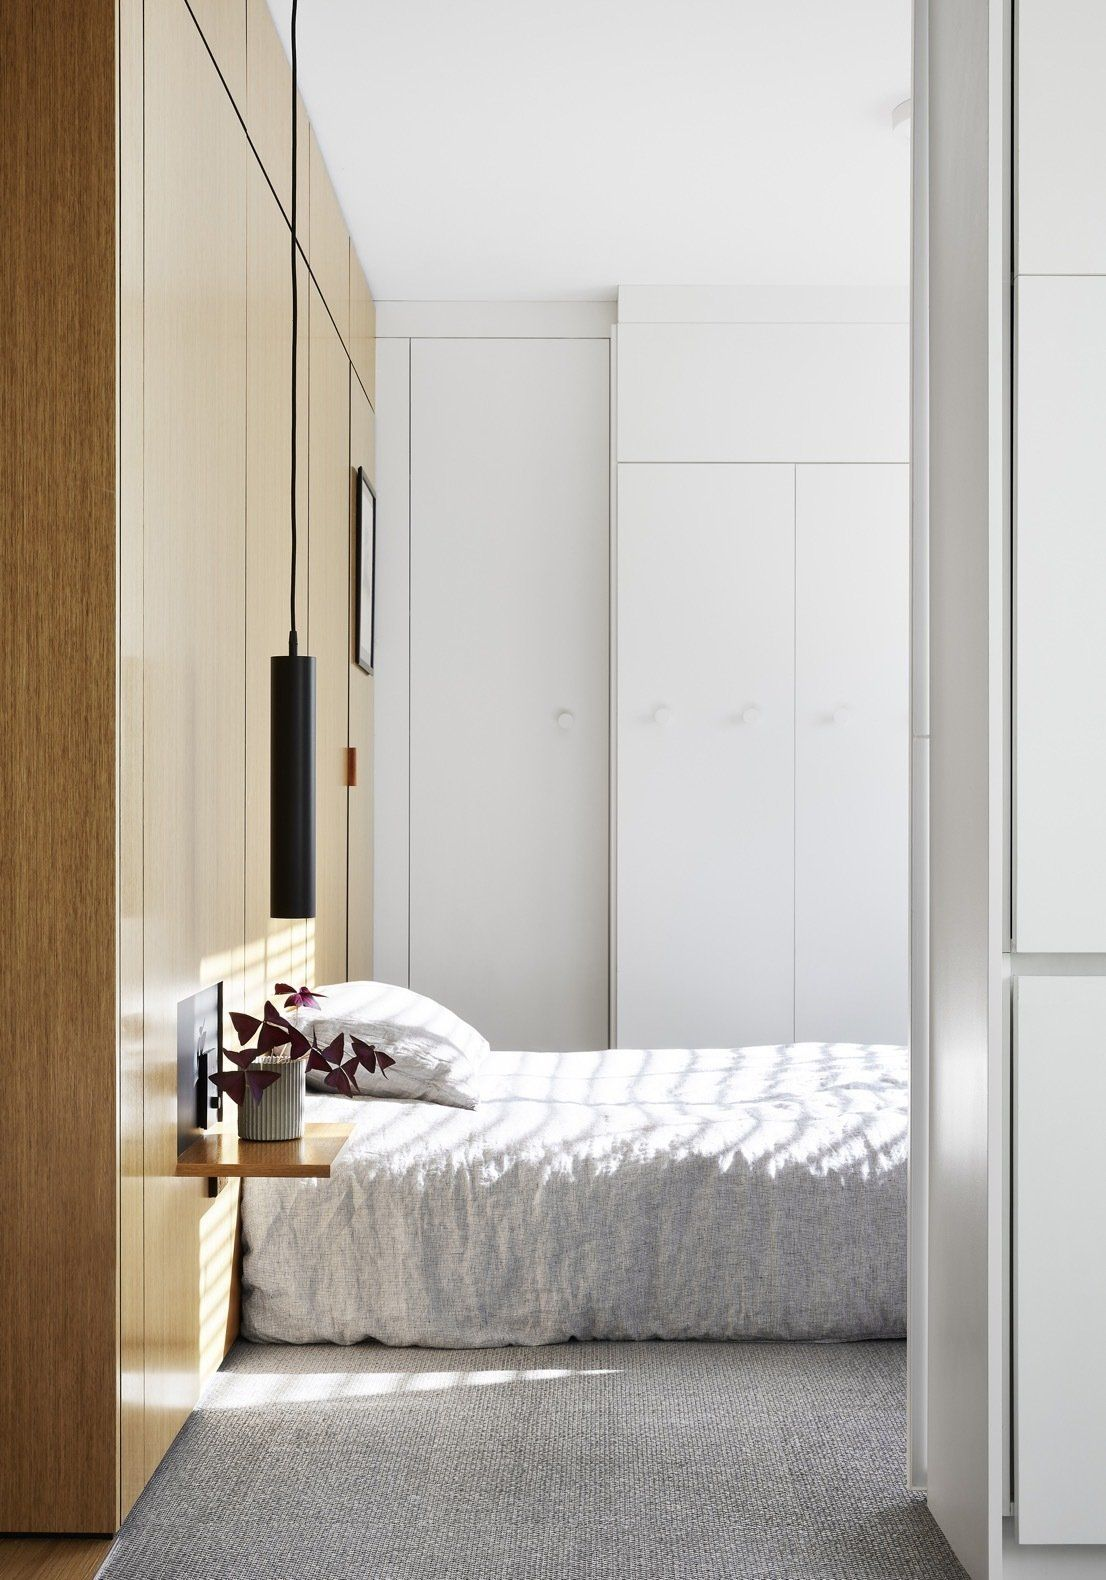 The sleeping area is small but doesn't look or feel tiny thanks to its airy interior design